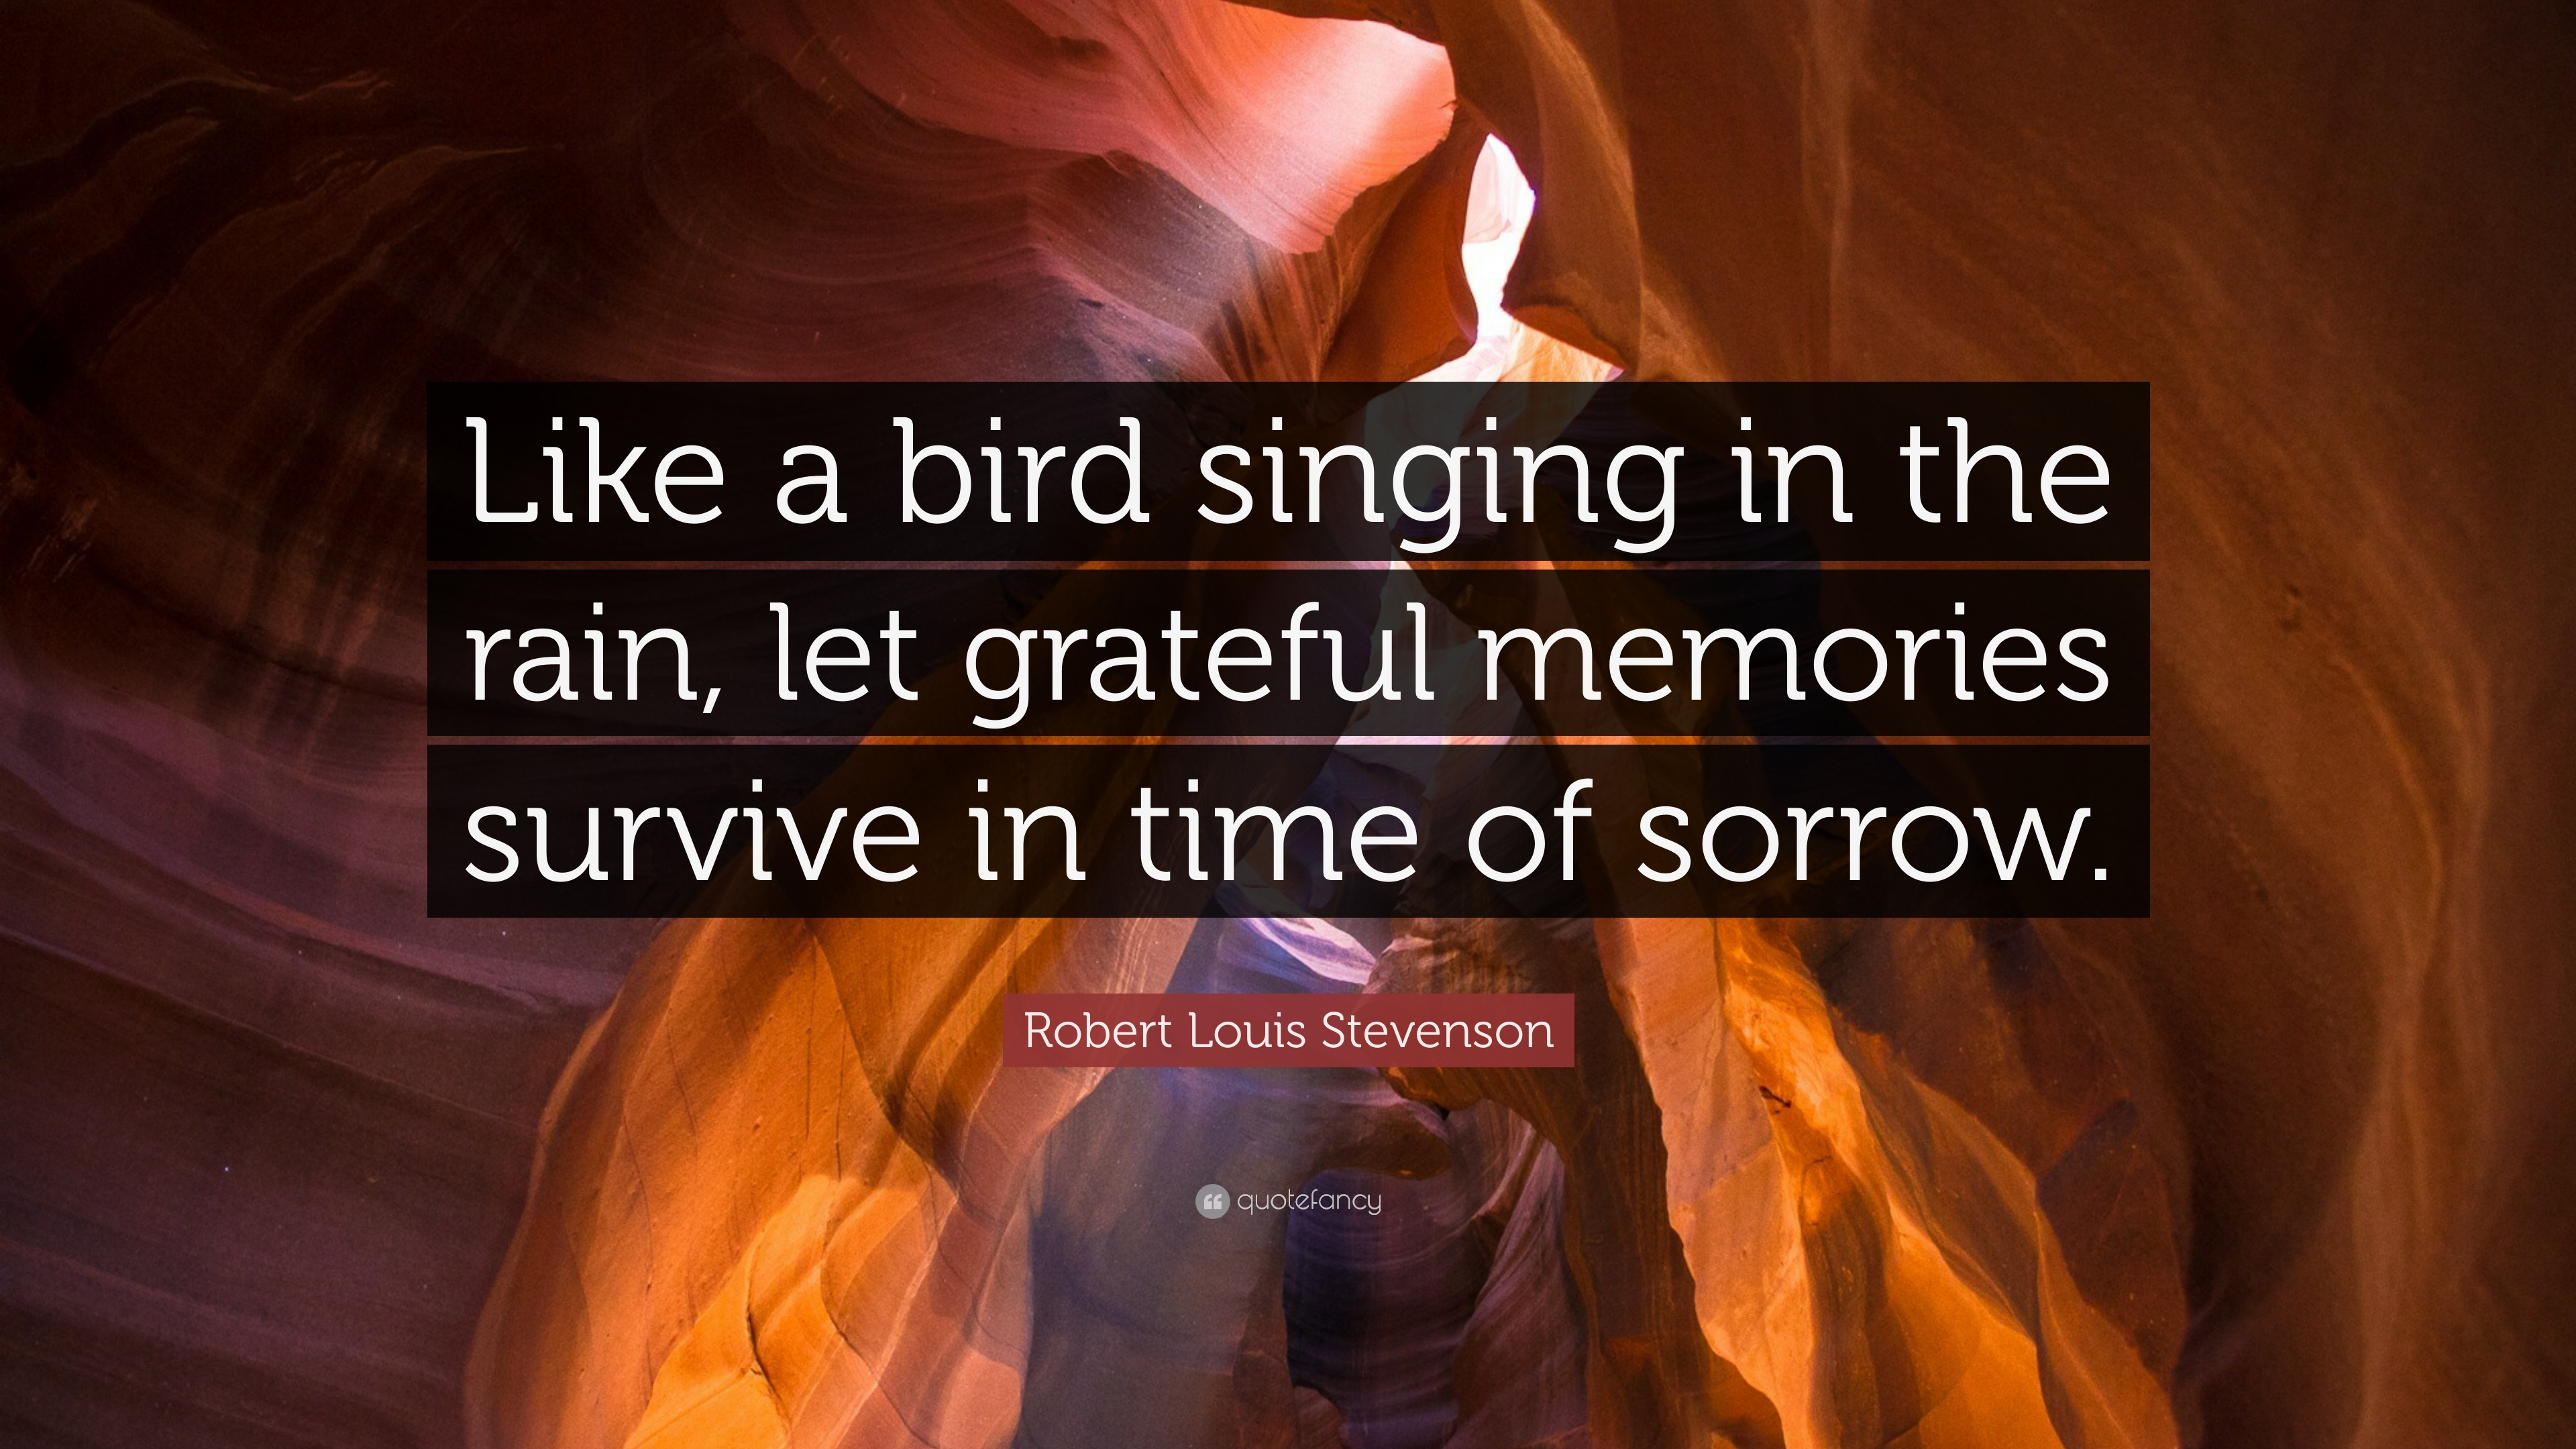 Vegan Quotes Wallpaper Robert Louis Stevenson Quote Like A Bird Singing In The